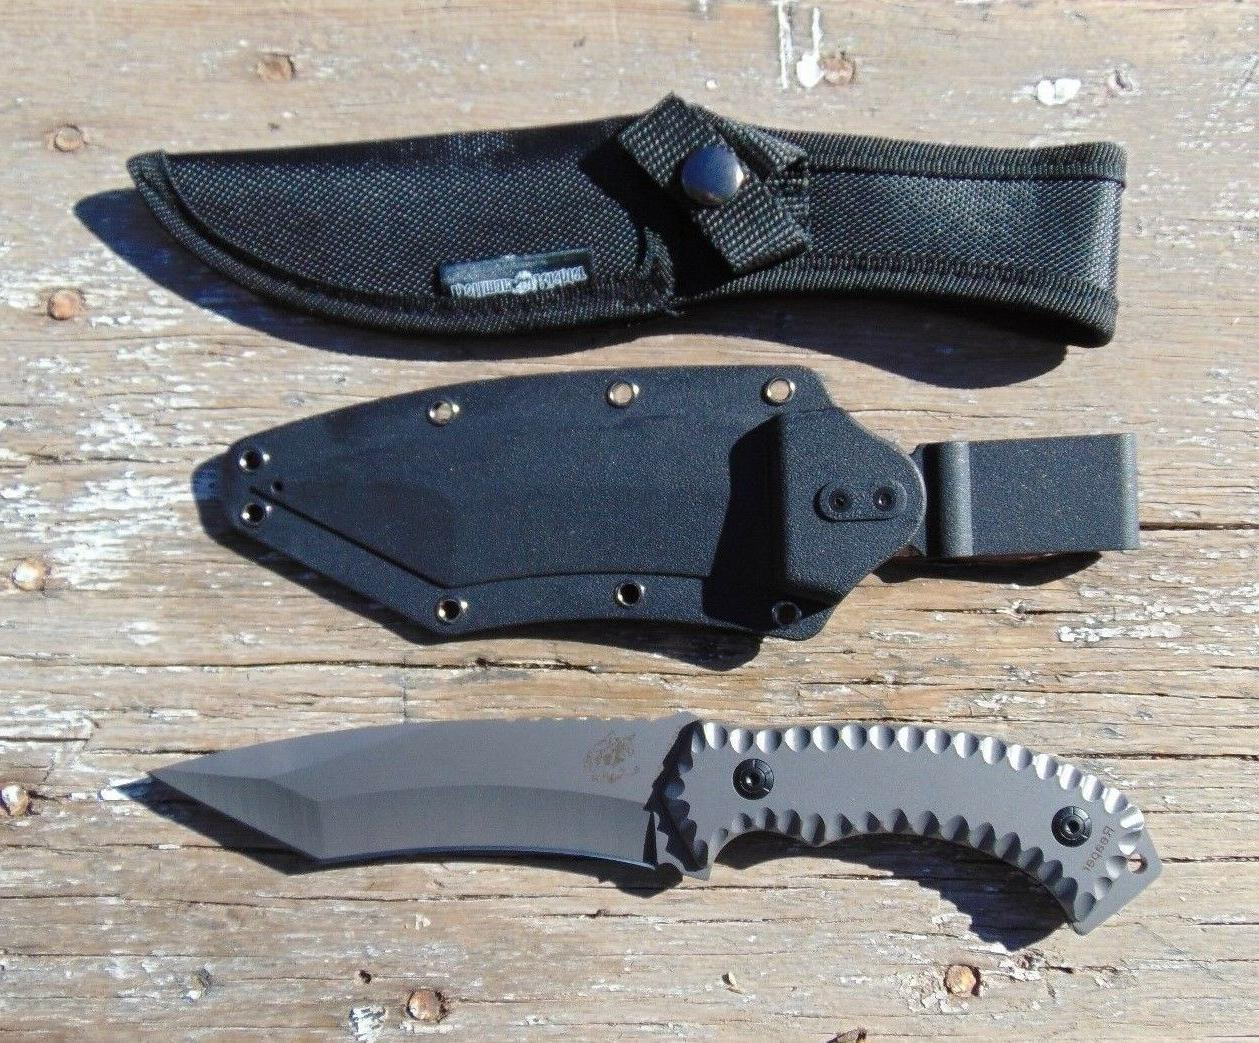 "Hoffman ""Reaper Survival Limited knife"